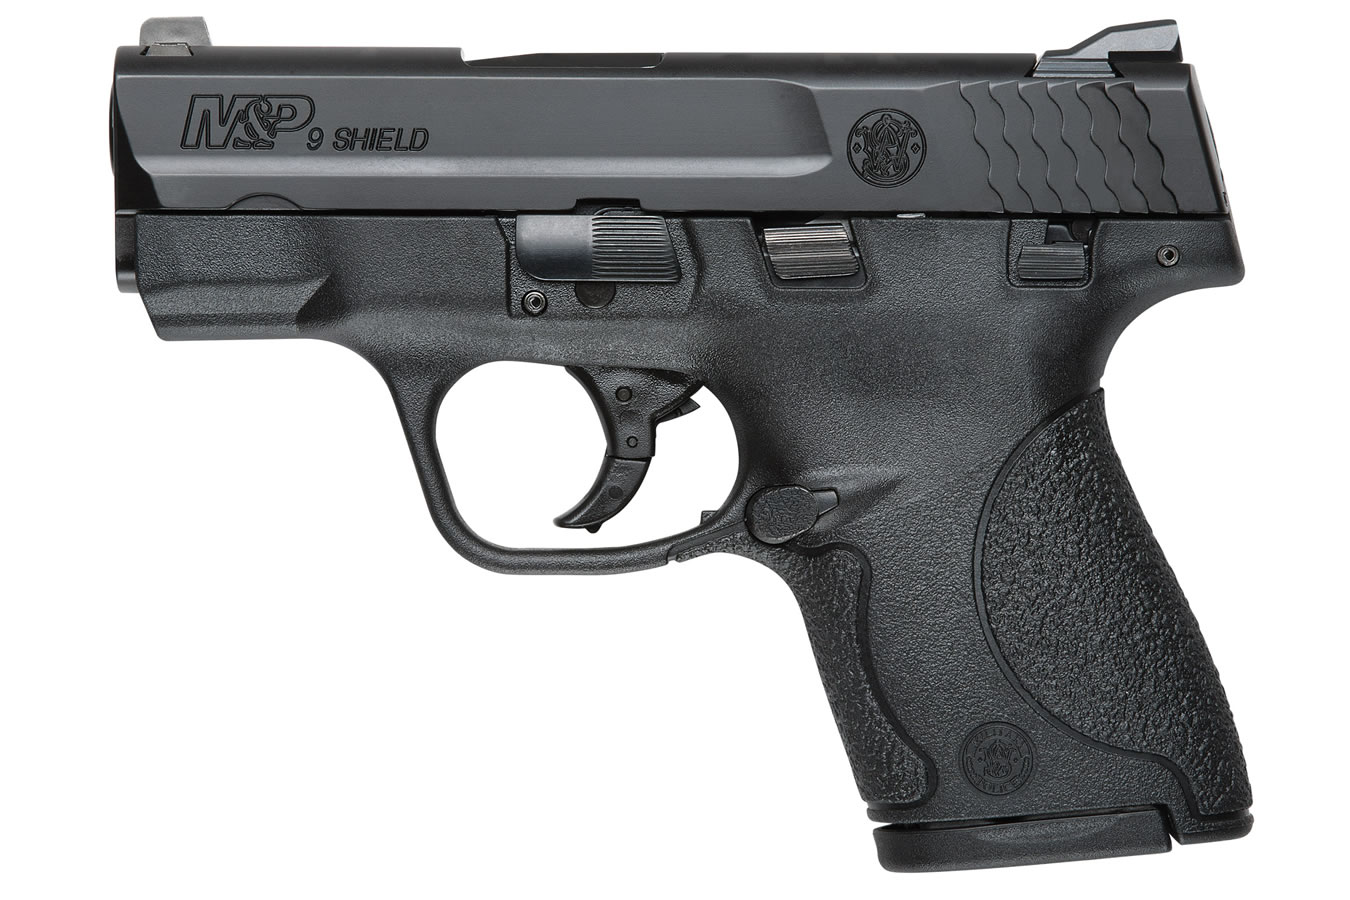 No. 7 Best Selling: SMITH AND WESSON MP9 SHIELD 9MM PISTOL